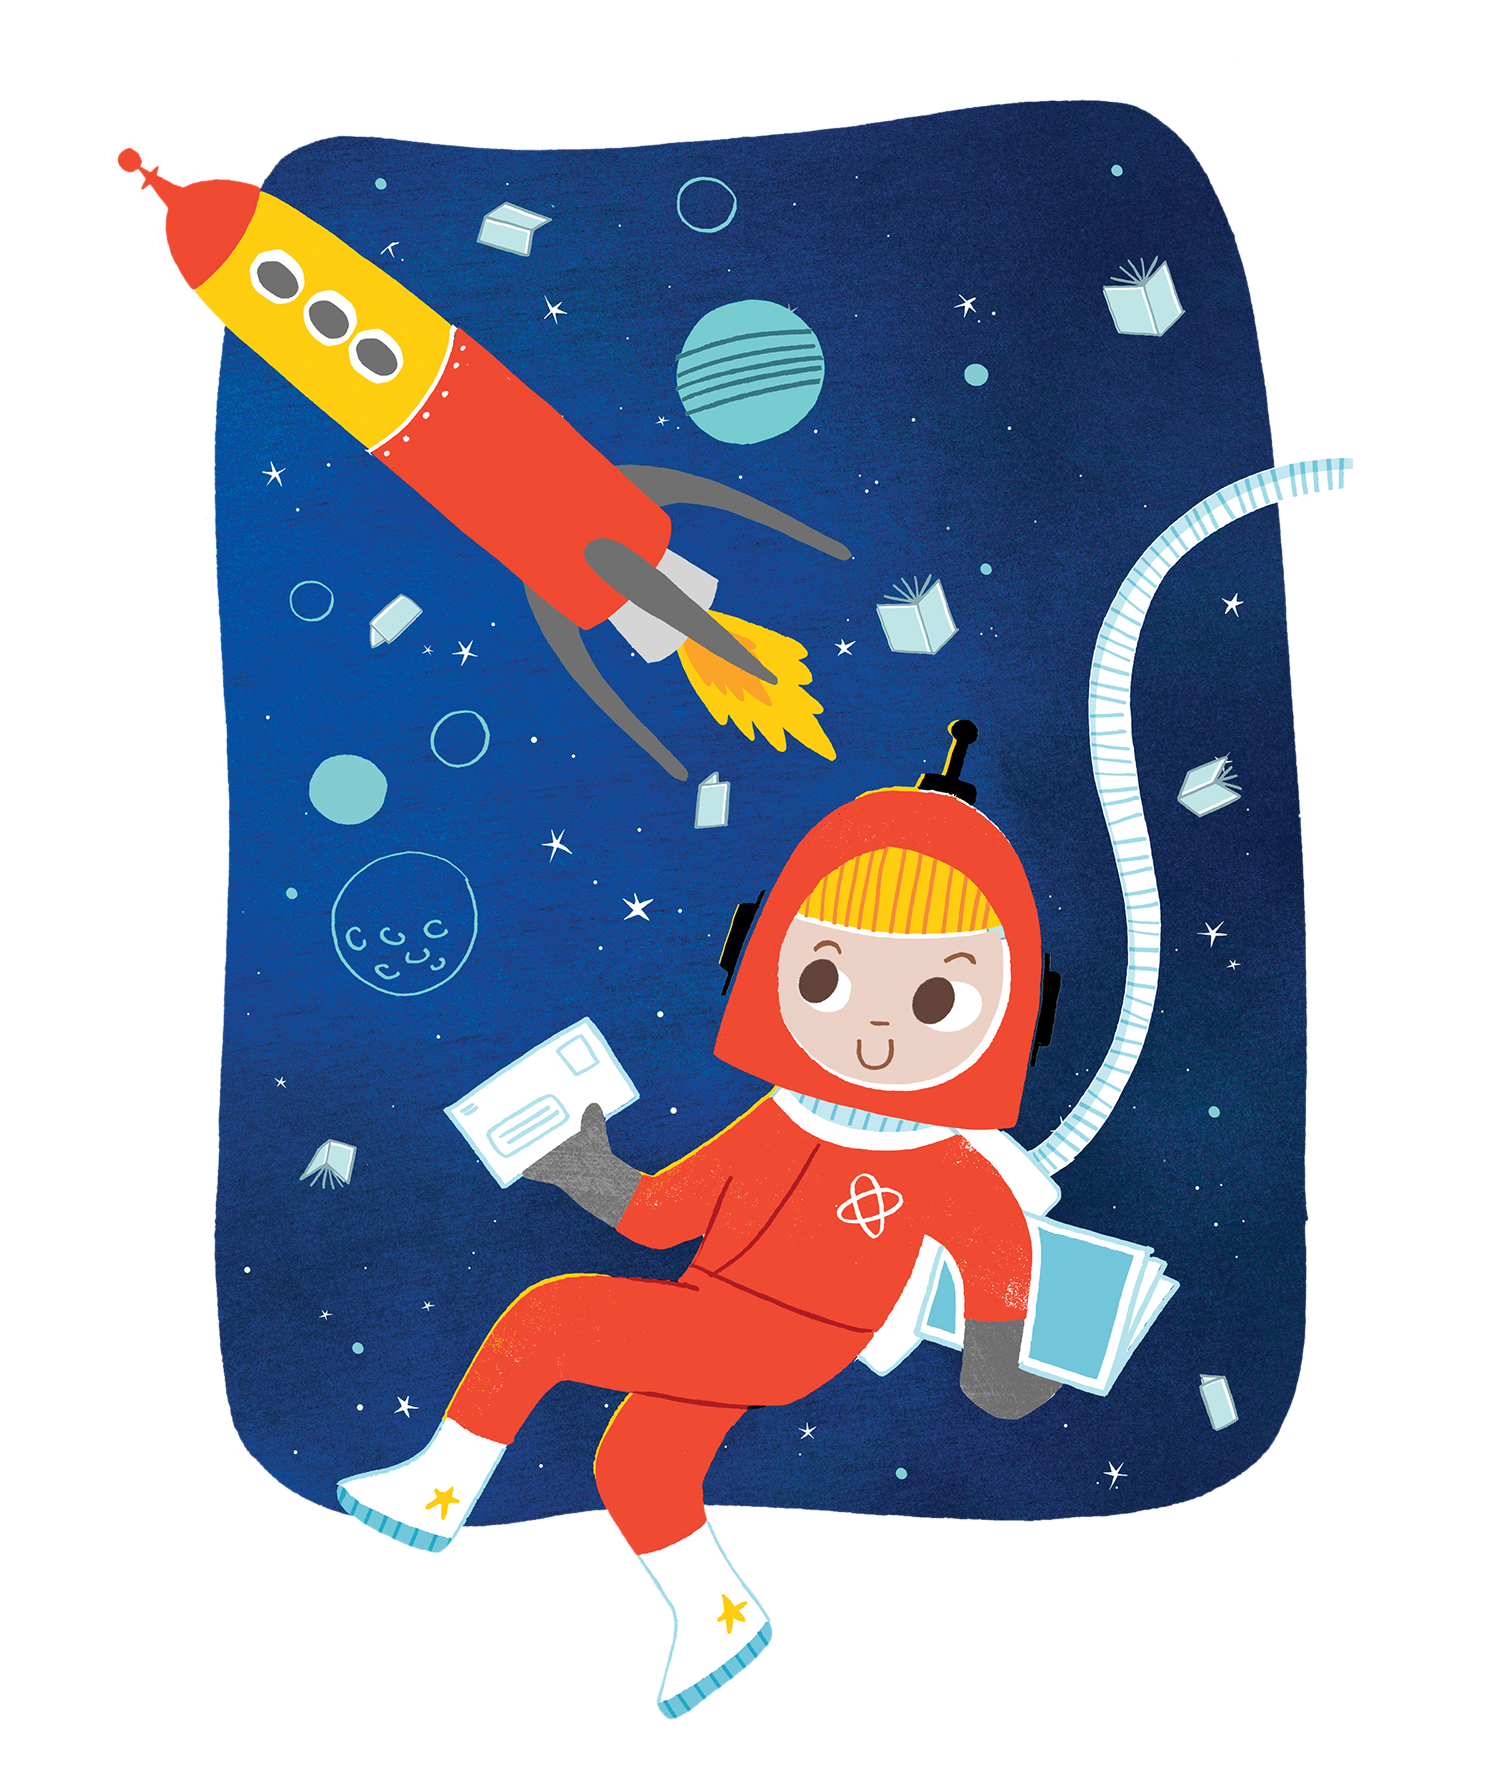 Kids Program: What Would You Do In Space?